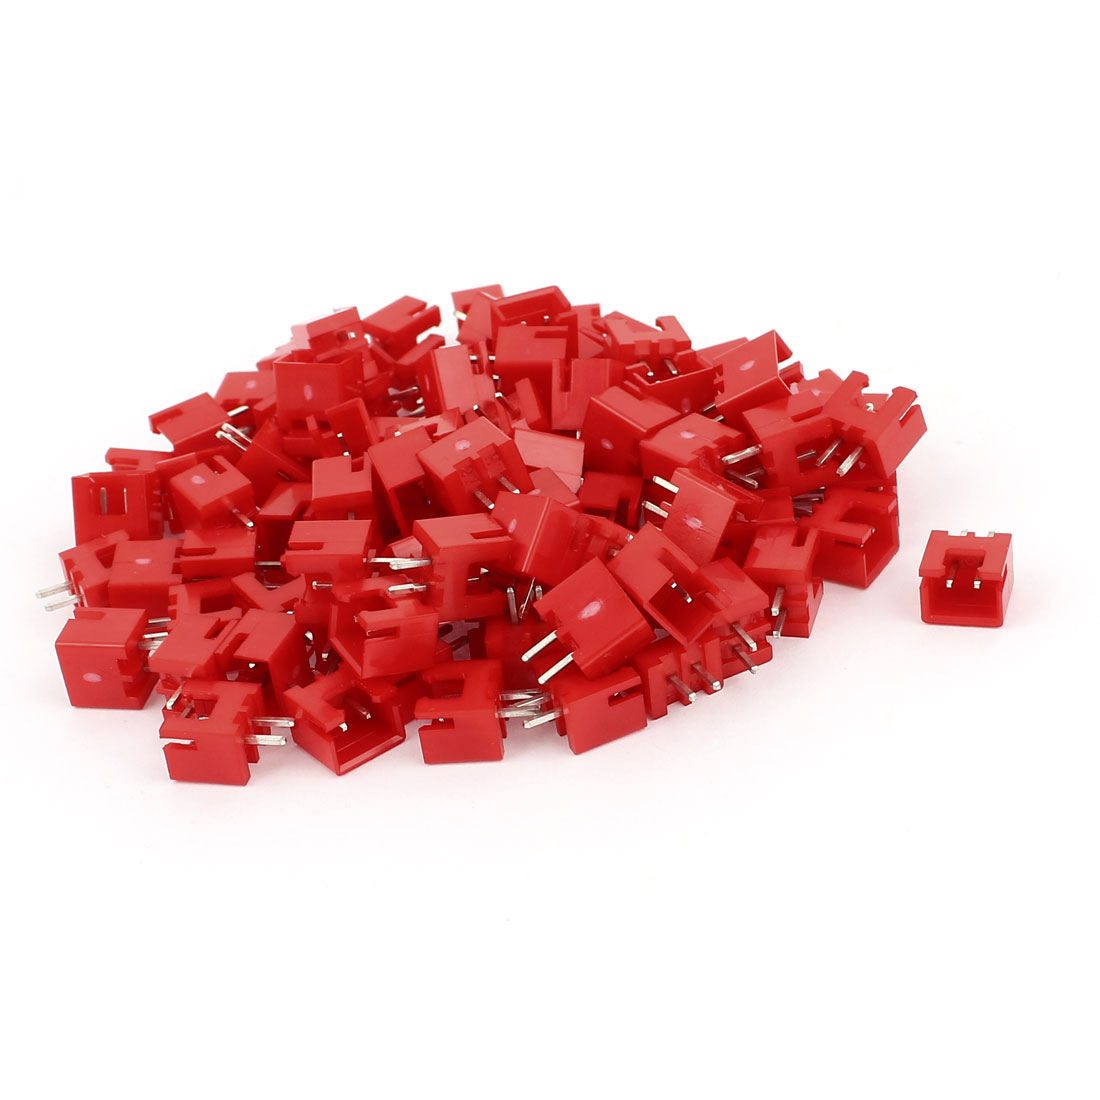 95 Pcs 2.54mm Pitch Straight 2pole PCB Pluggable Terminal Block Connectors Red